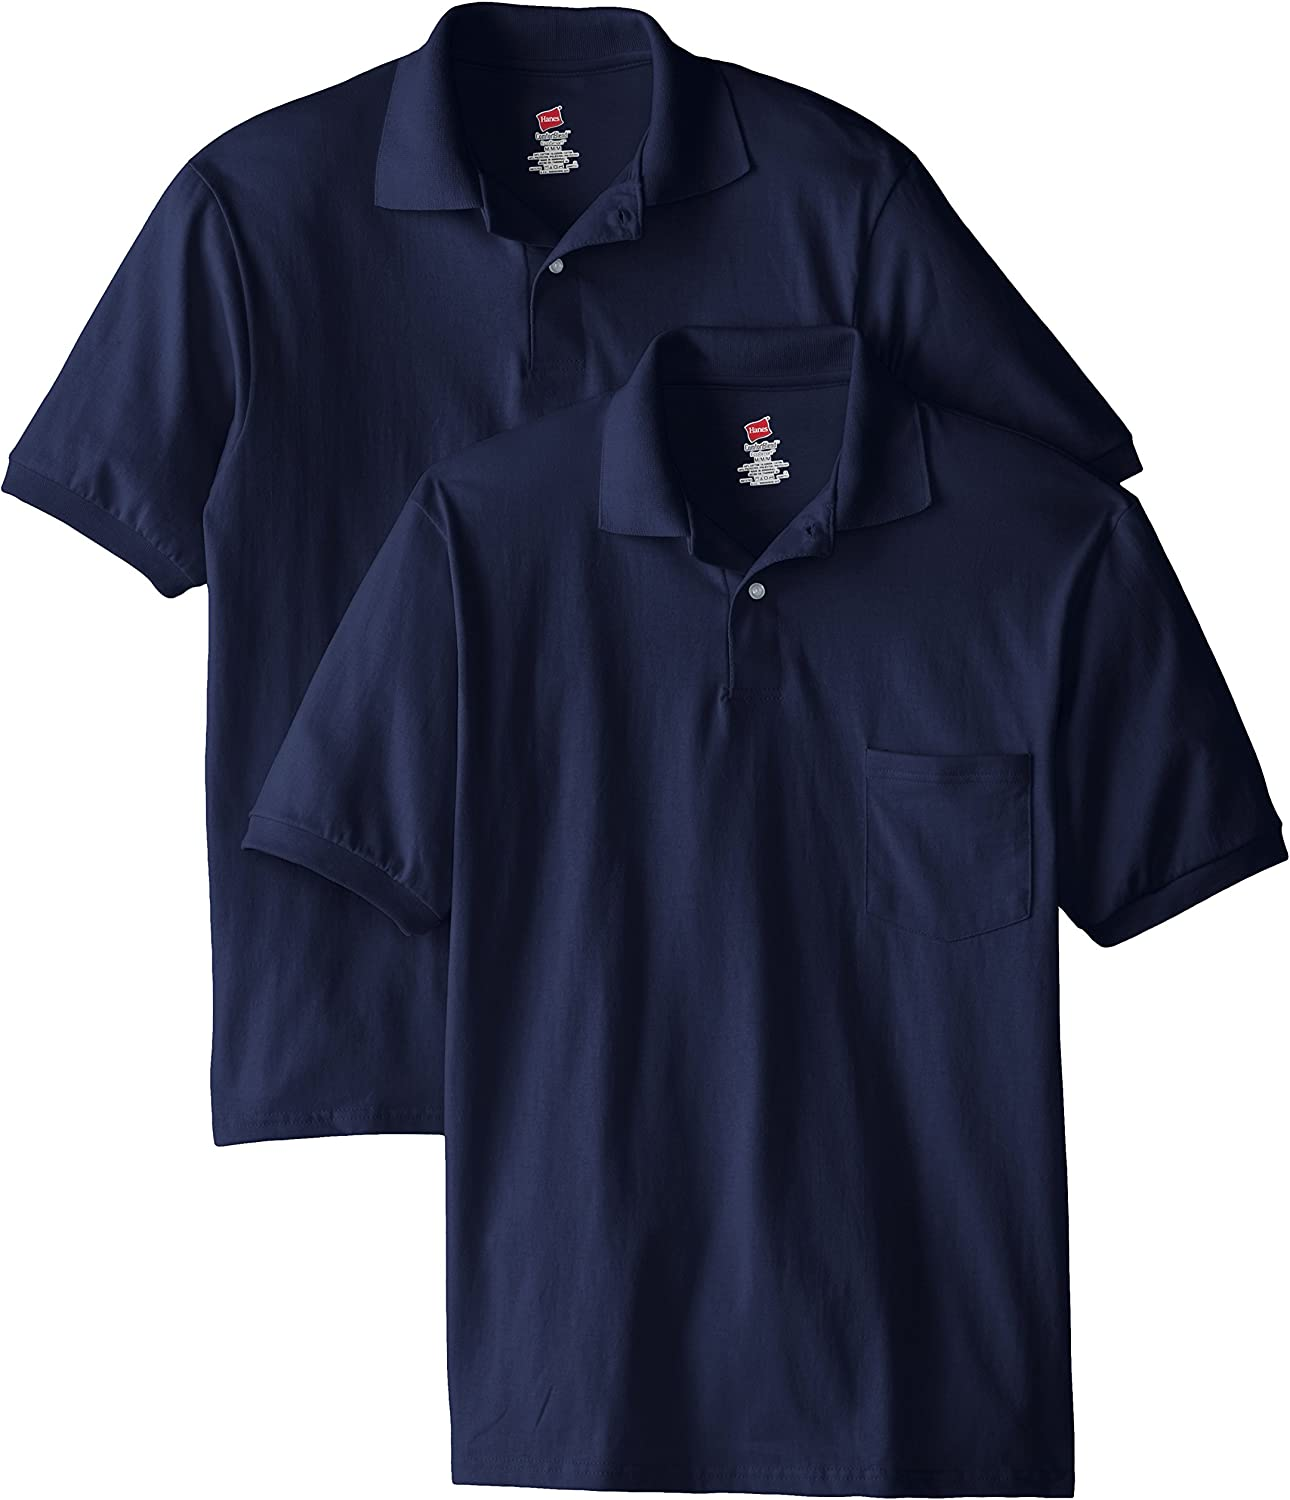 Hanes Men's Short-Sleeve Jersey Pocket Polo (Pack of 2) at  Men's Clothing store